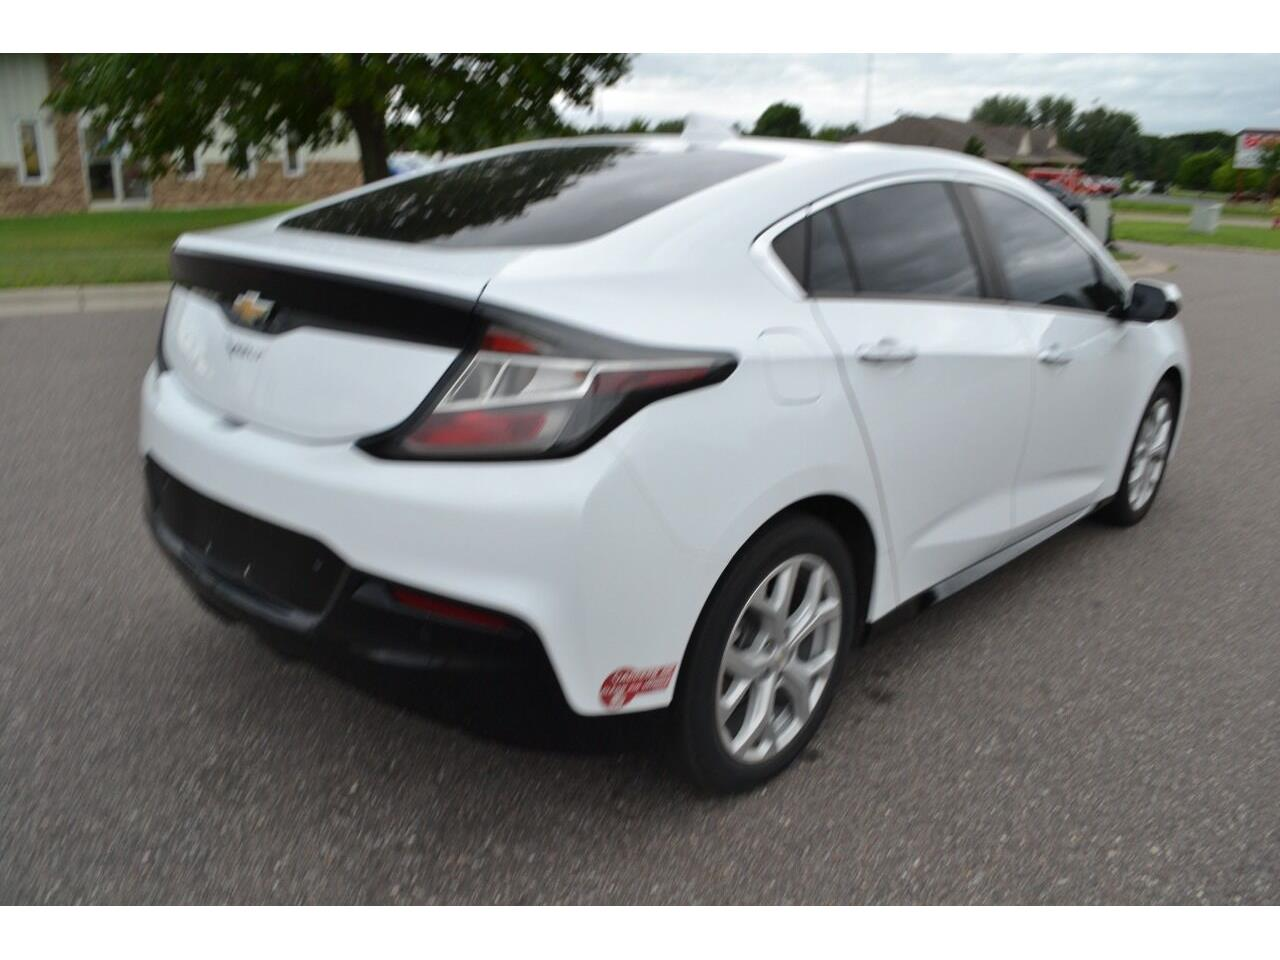 2017 Chevrolet Volt (CC-1382188) for sale in Ramsey, Minnesota